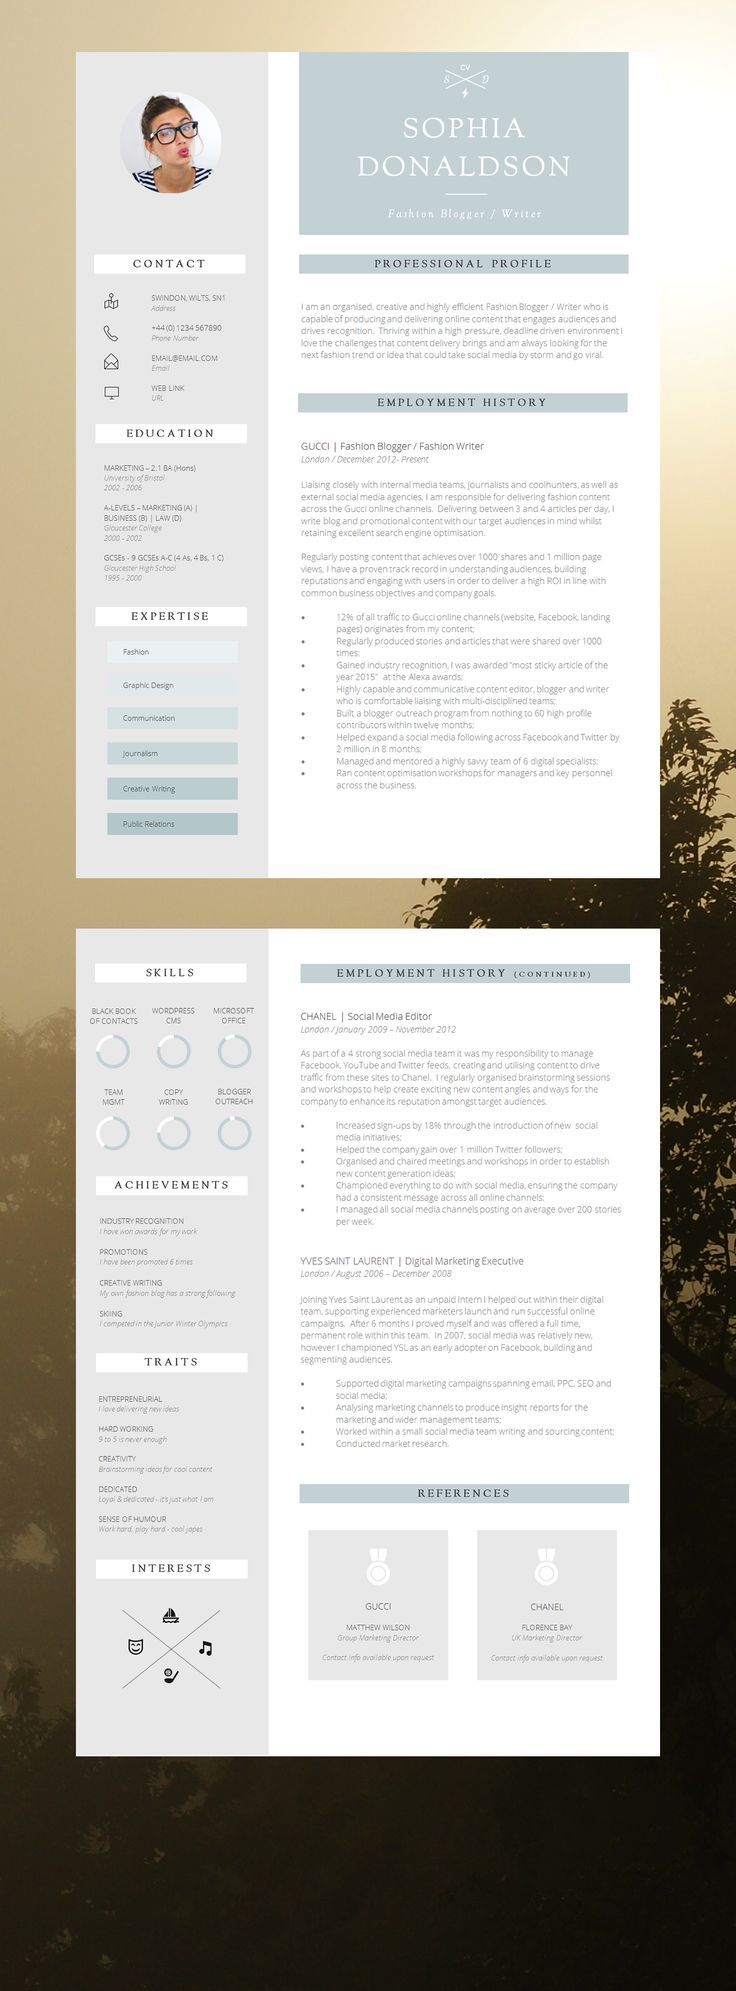 CV Template | Resume Template | CV Design + Cover Letter + CV Guide For  Microsoft Word | Instant Digital Download |   Resume Template Word